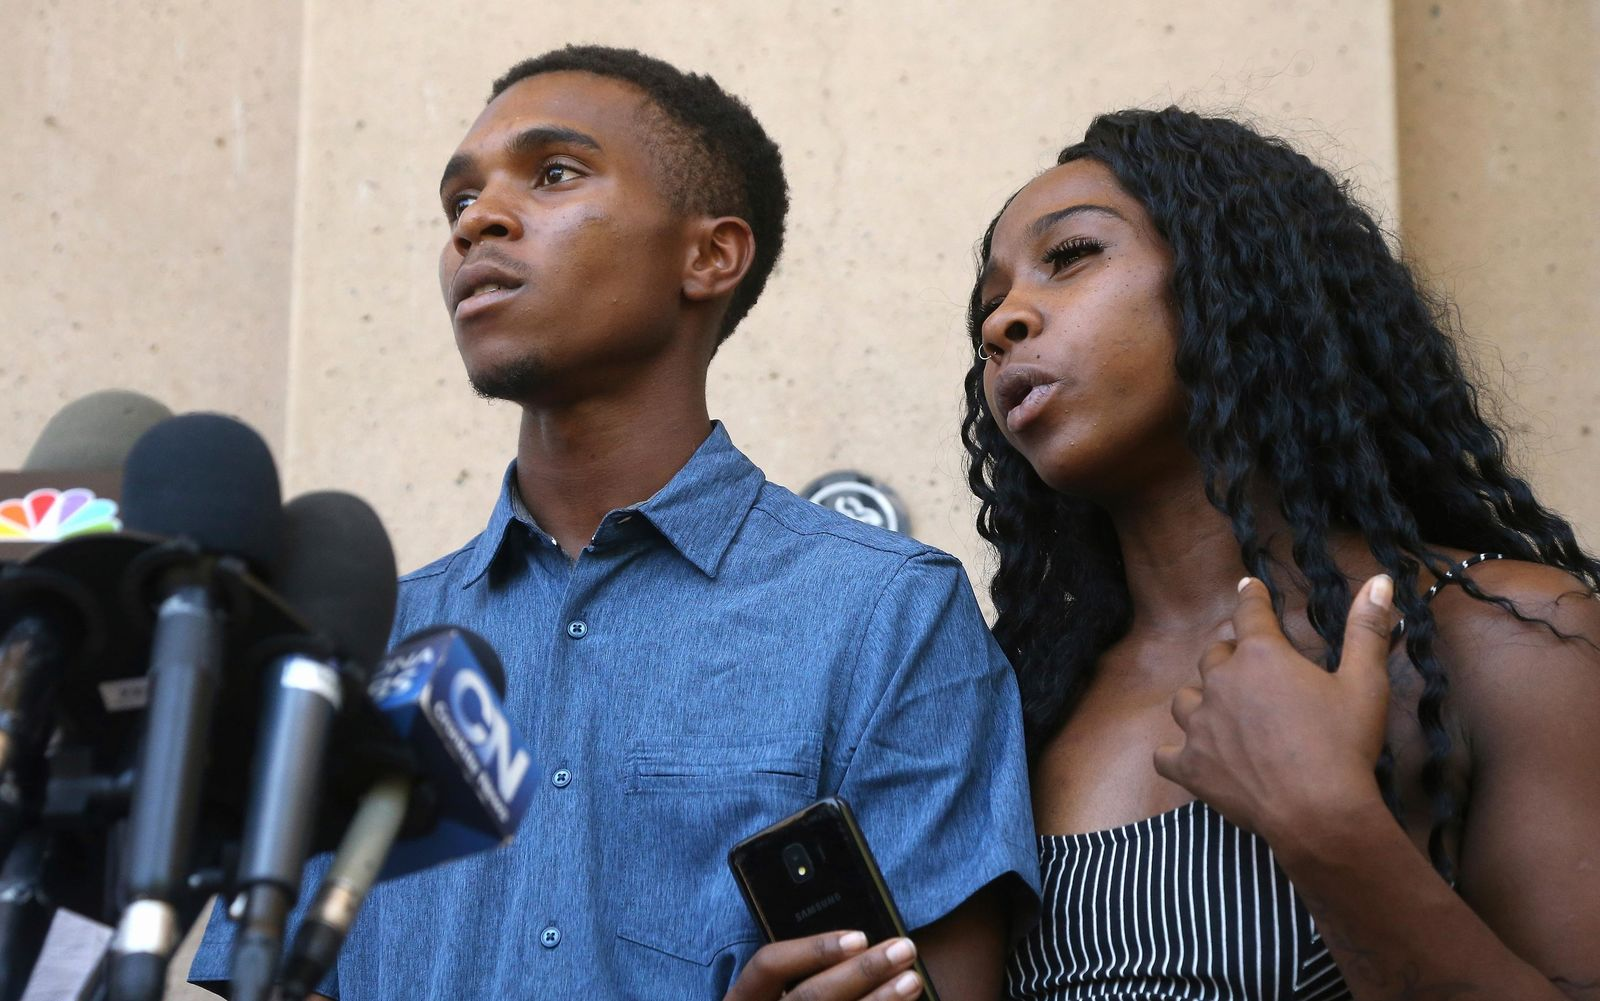 Iesha Harper, right, answers a question during a news conference as she is joined by her fiancee Dravon Ames, left, at Phoenix City Hall, Monday, June 17, 2019, in Phoenix..(AP Photo/Ross D. Franklin)